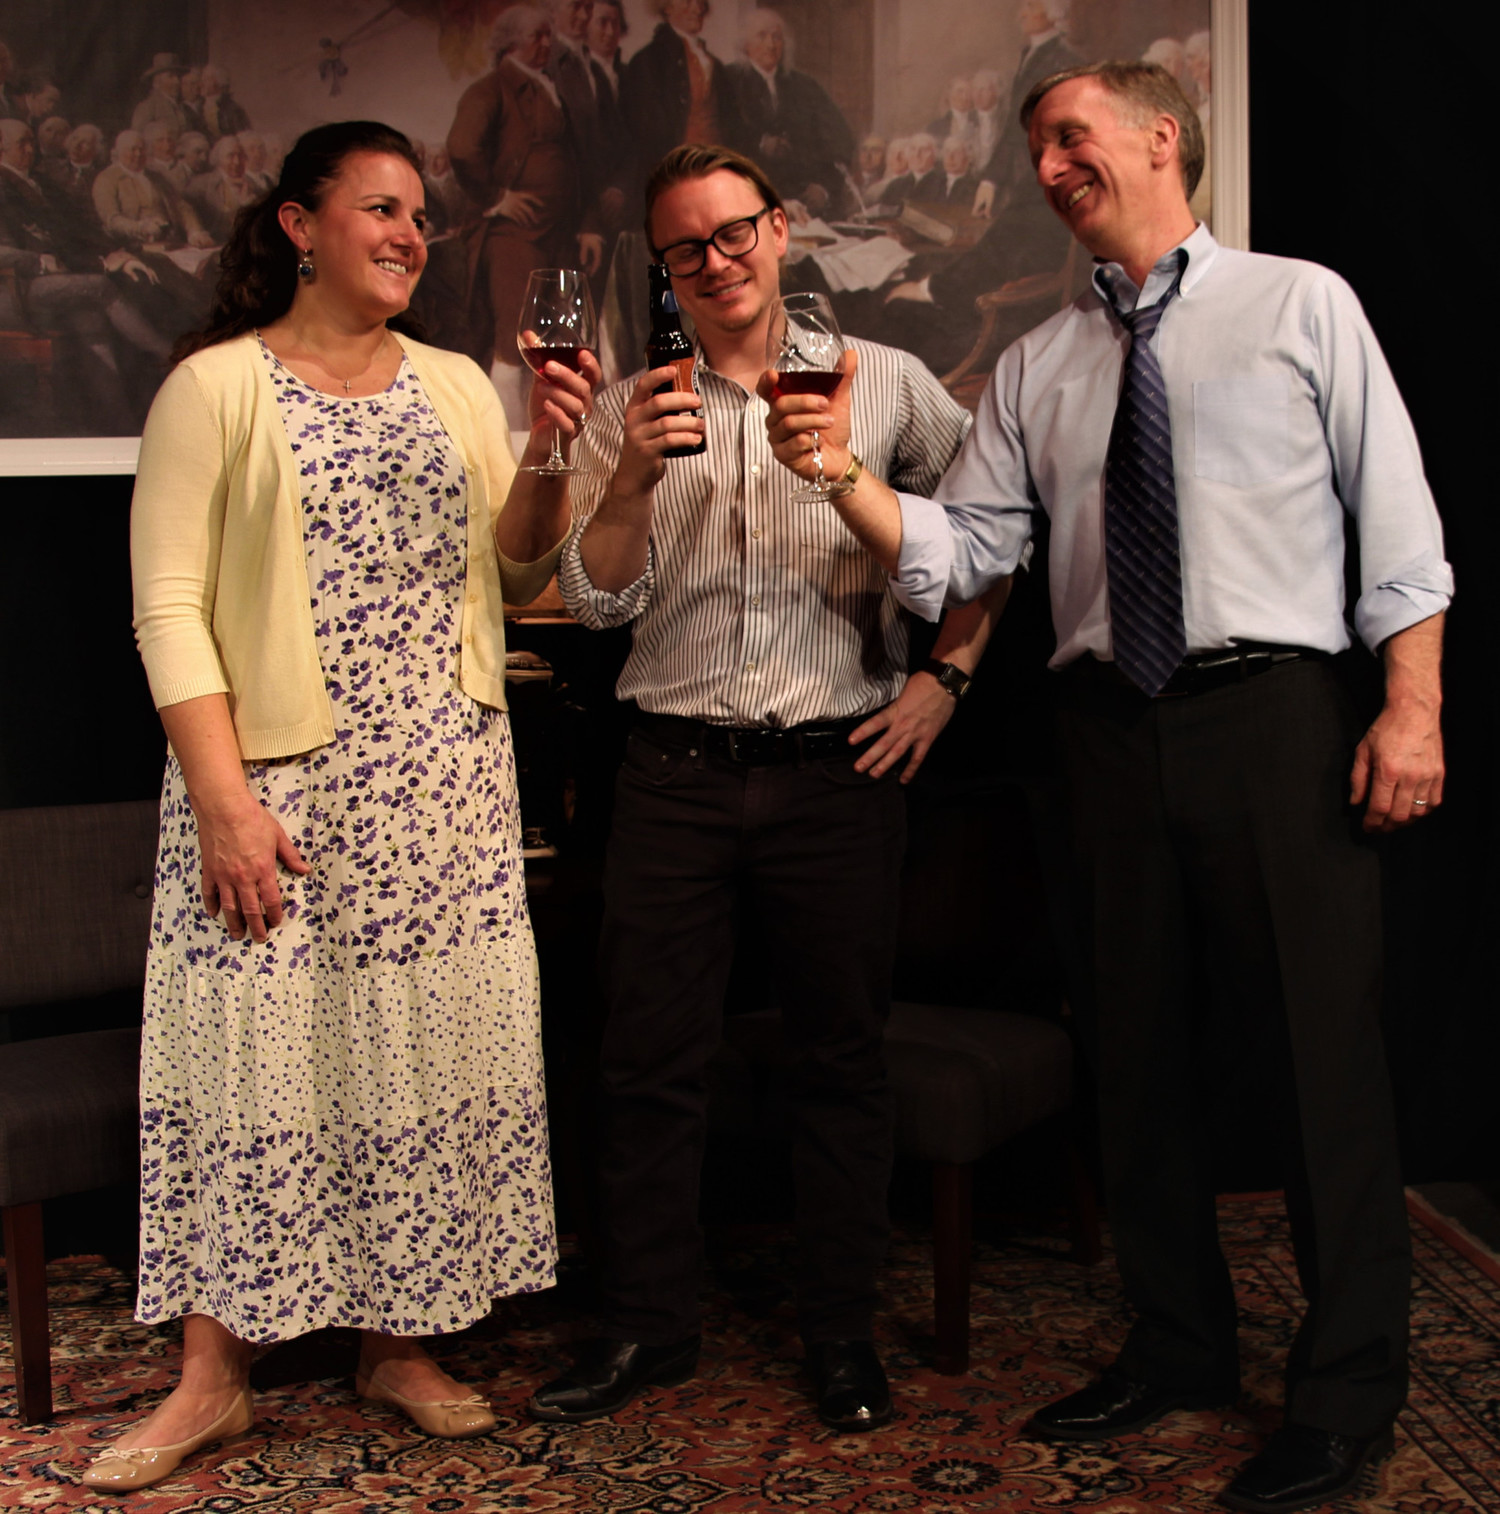 BWW Review: THE GOD GAME at Square One Theatre